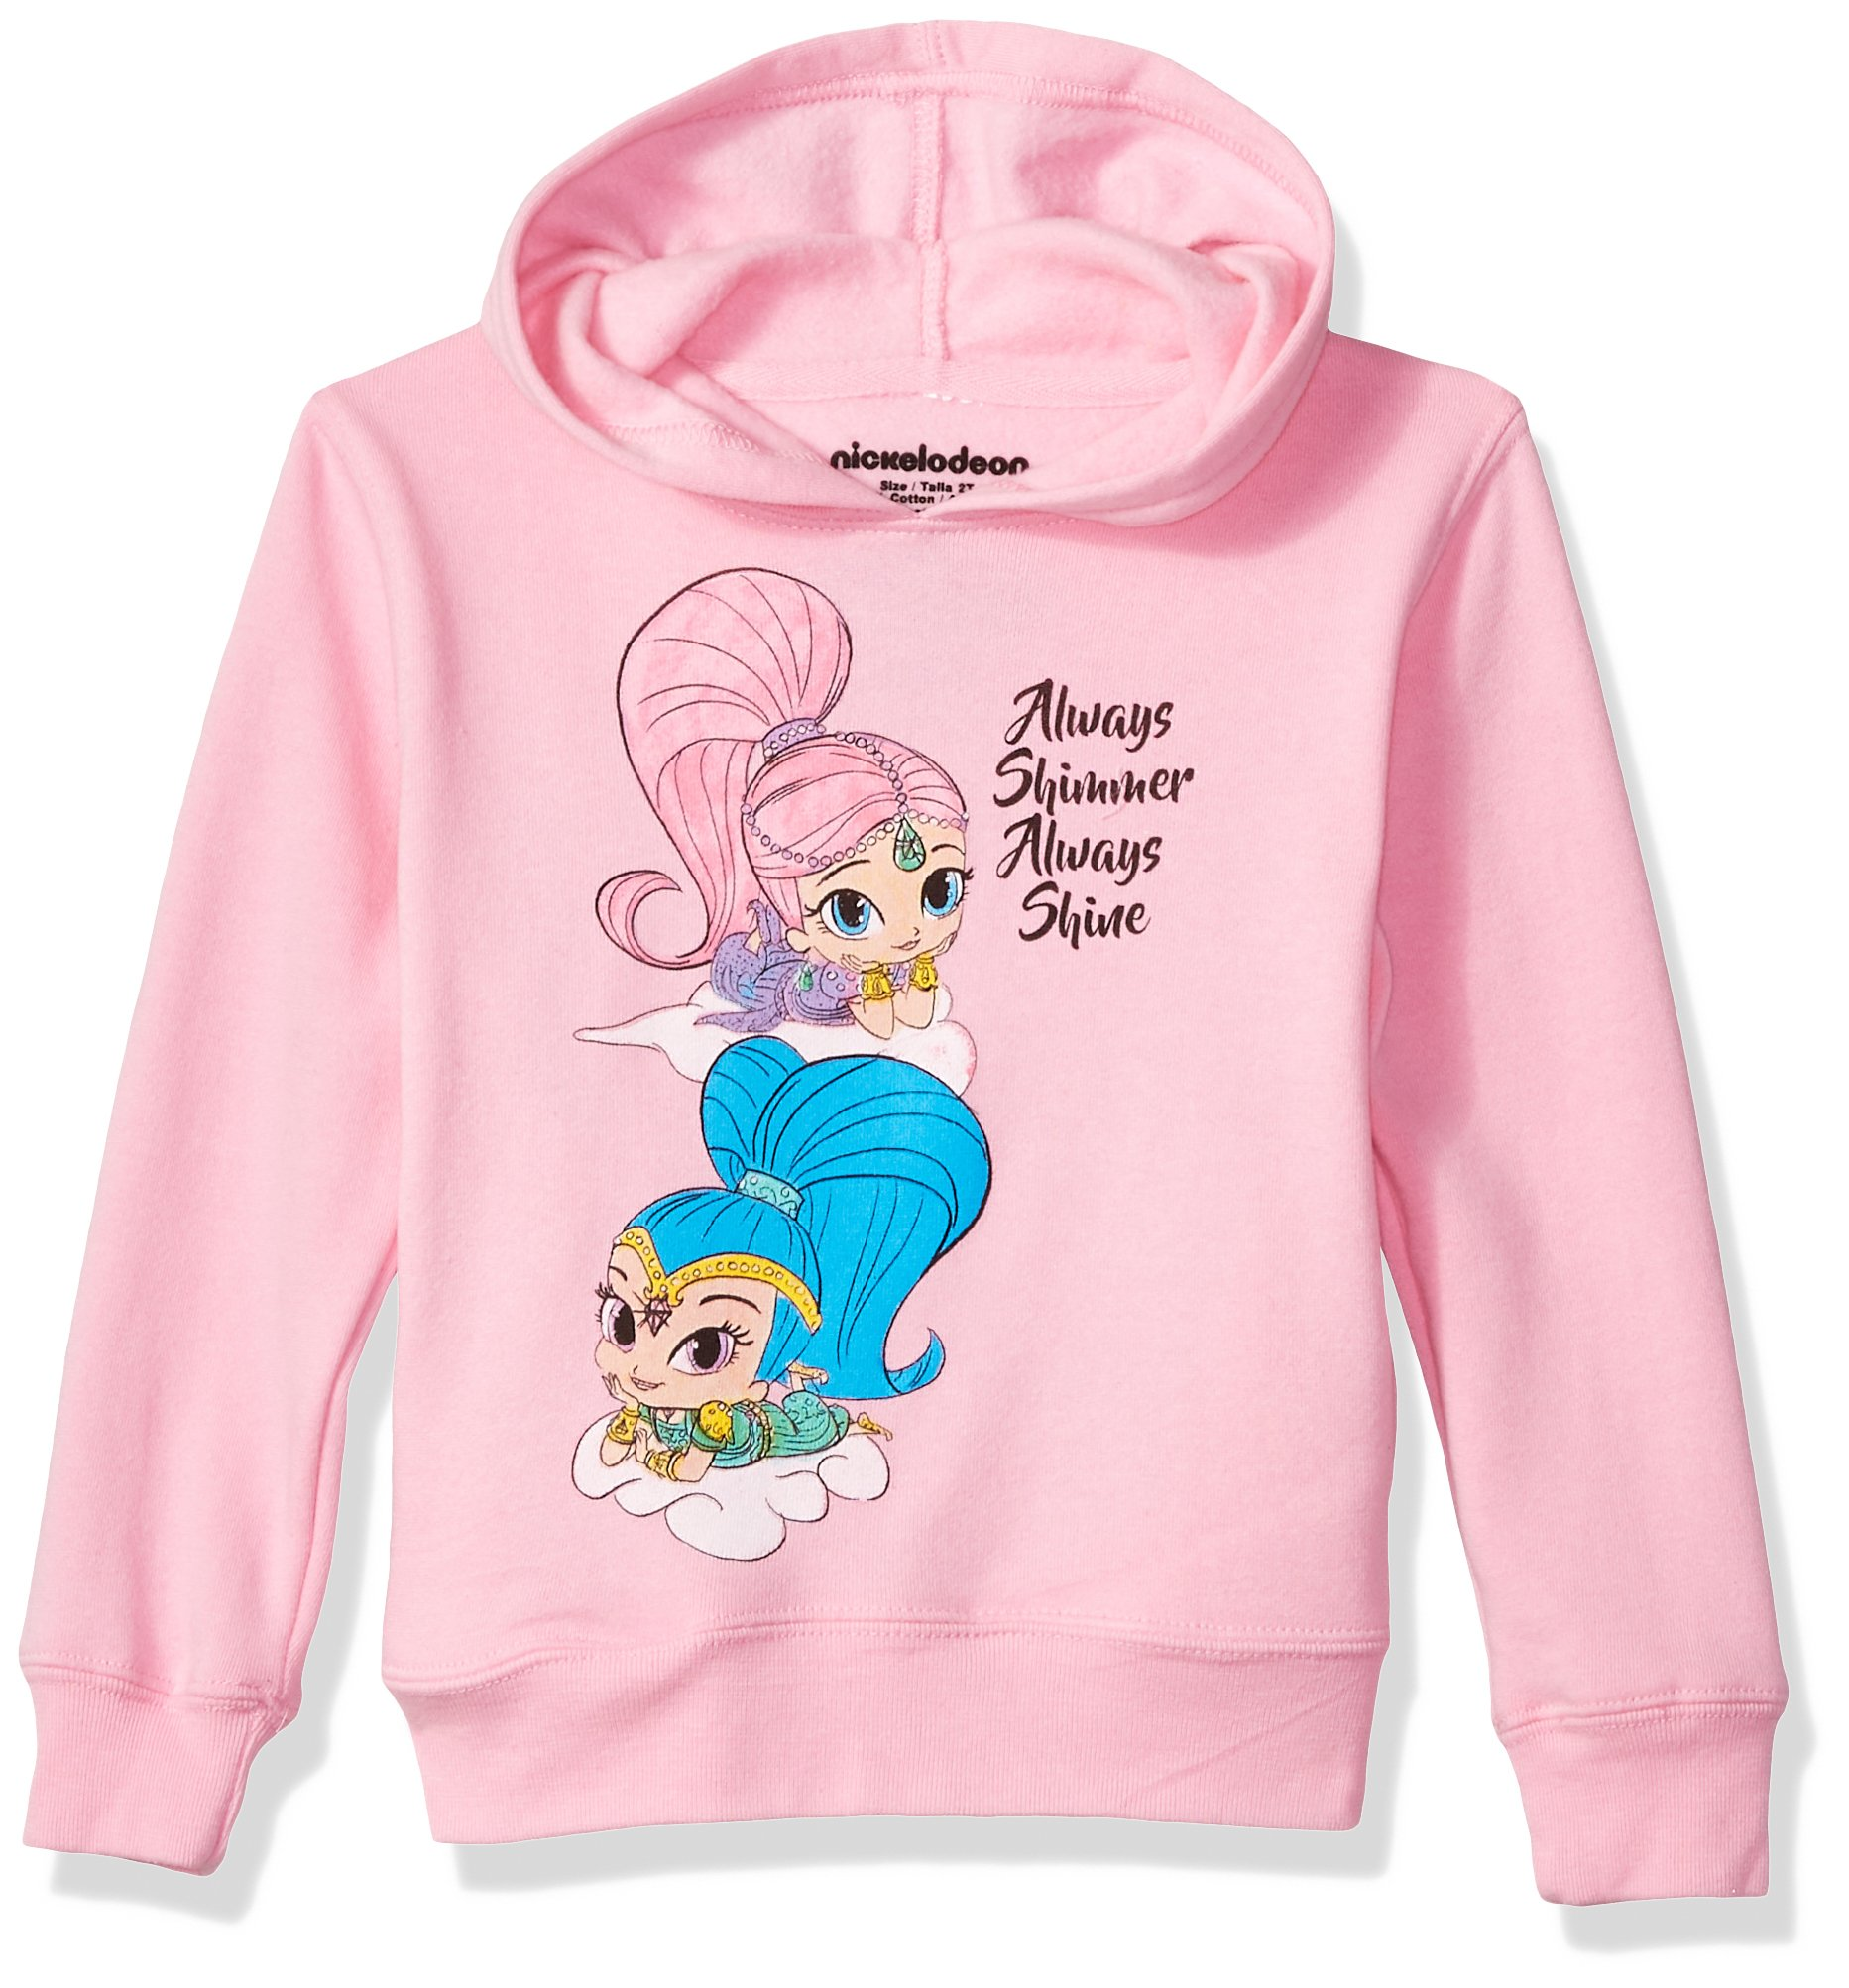 Nickelodeon Toddler Girls' Shimmer and Shine Pullover Fleece, Shimmer Shine Always, 4T